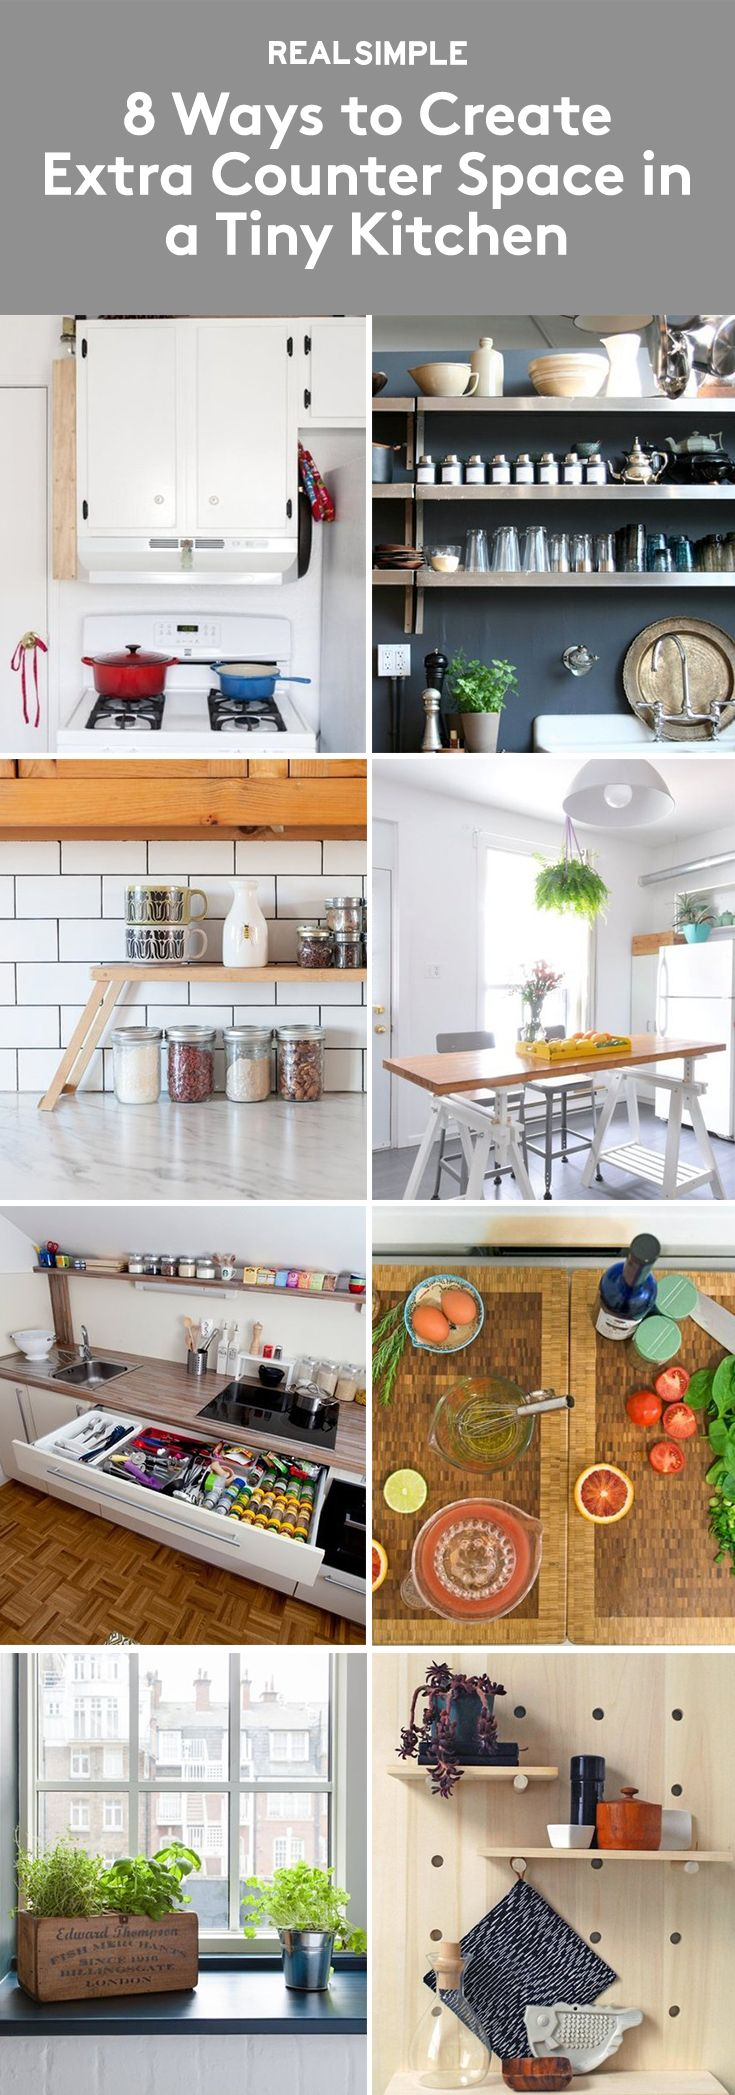 203 best organizing ideas images on pinterest organizing ideas 8 ways to create extra counter space in a tiny kitchen